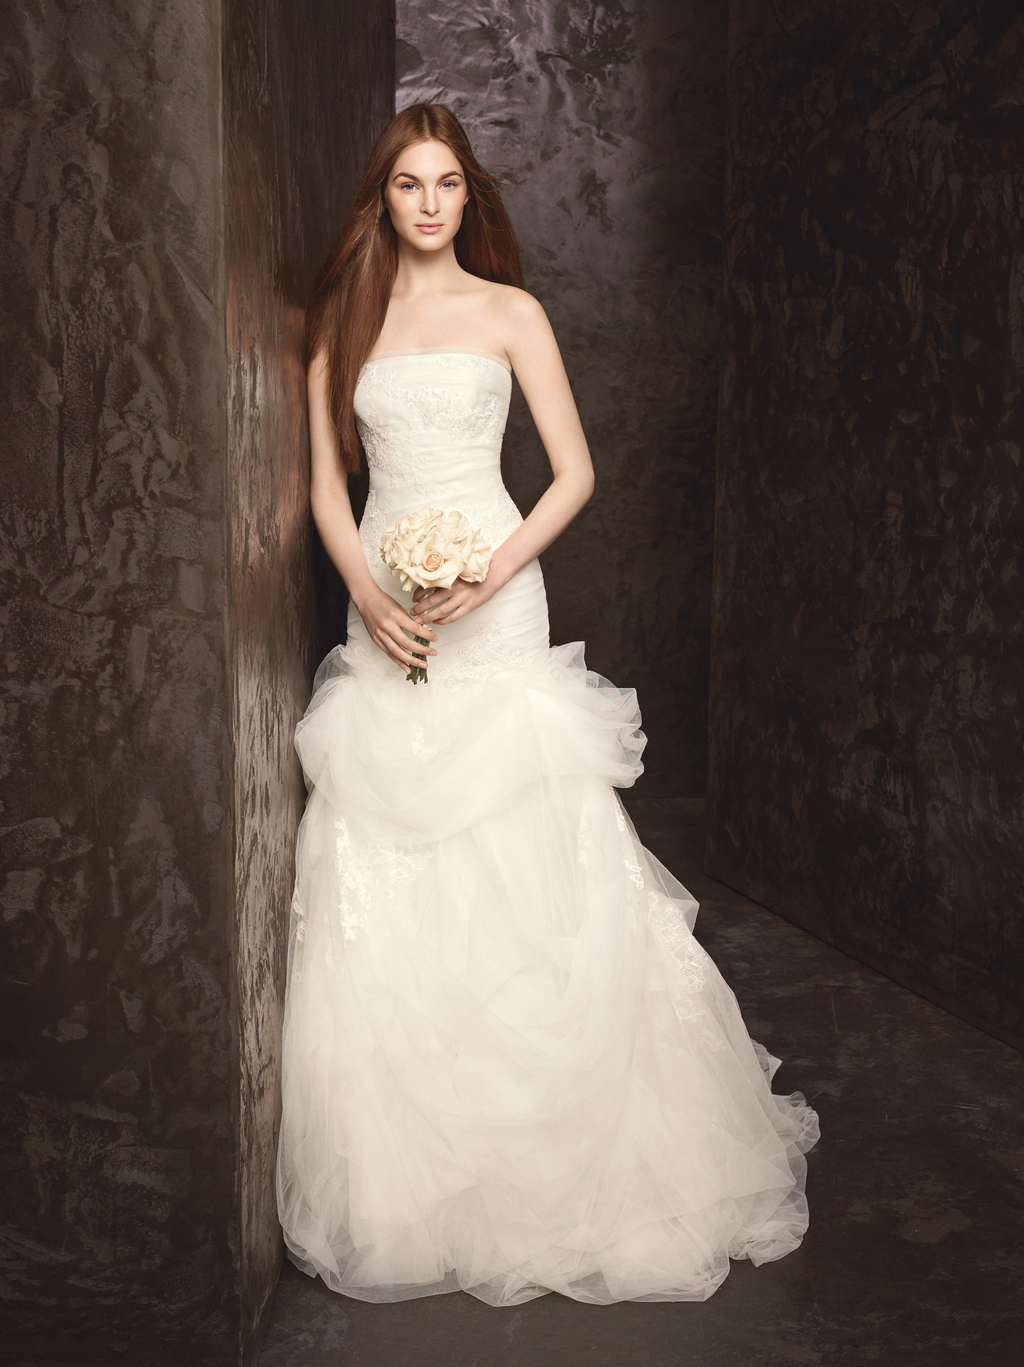 Spring-2013-wedding-dress-white-by-vera-wang-bridal-gowns-style-vw351166.full